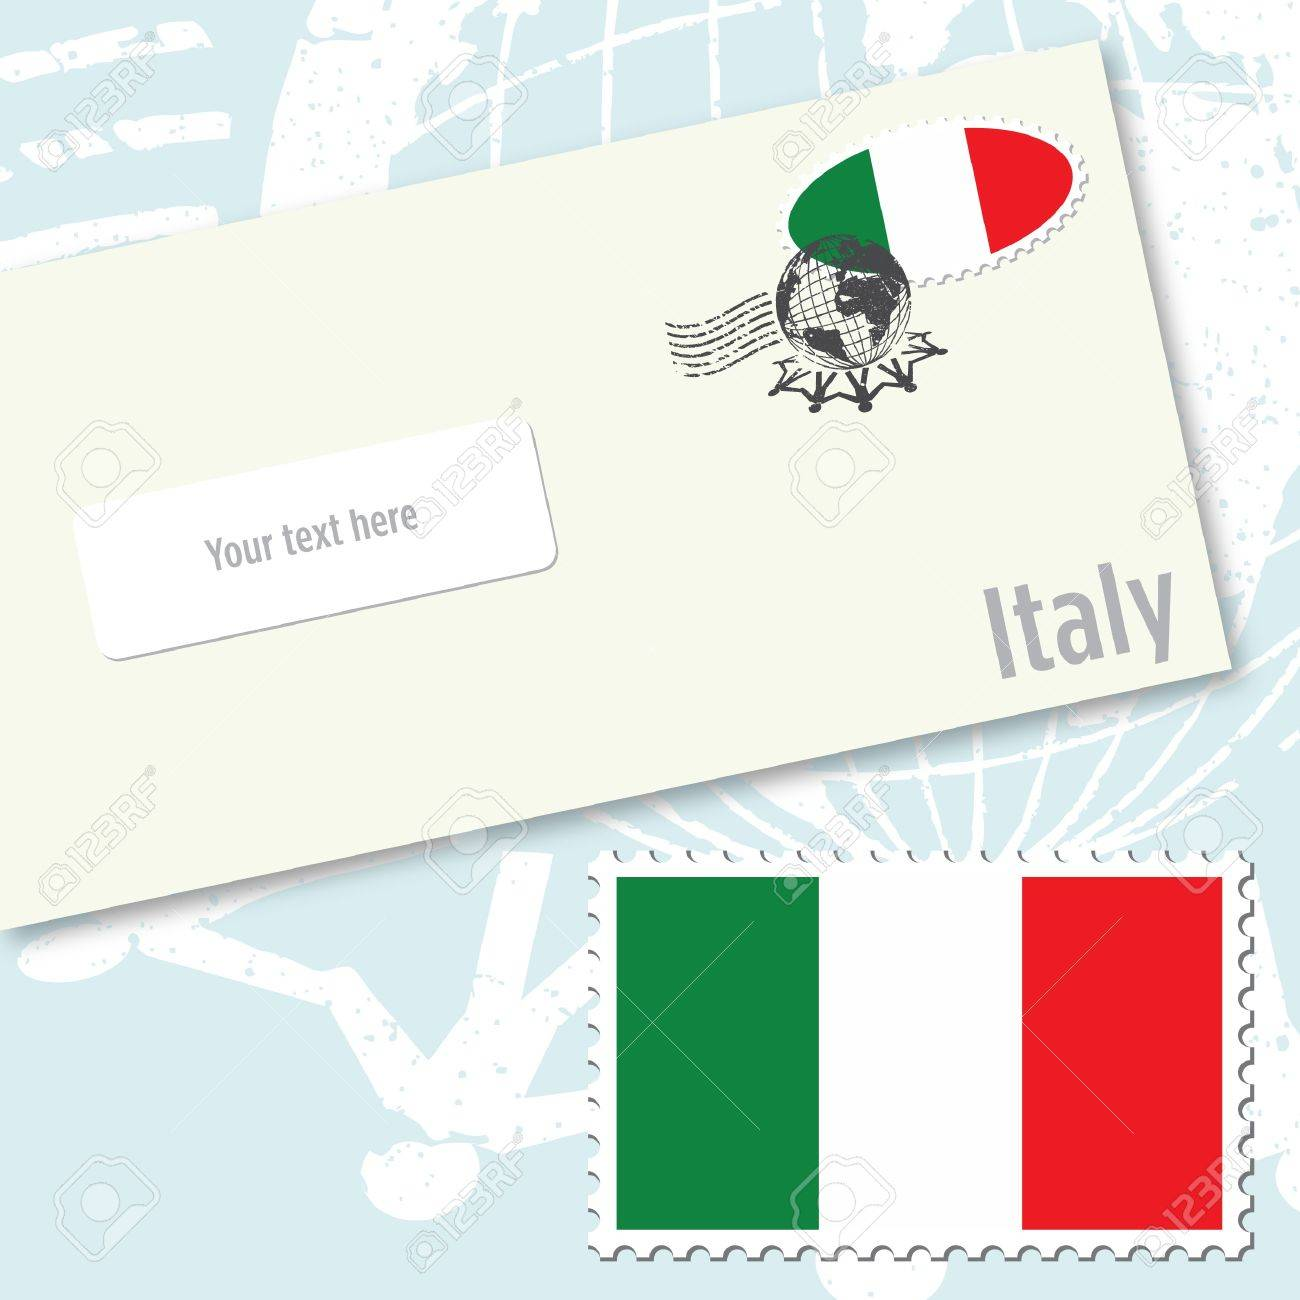 Italy envelope design with country flag stamp and postal stamping Stock Vector - 9117238